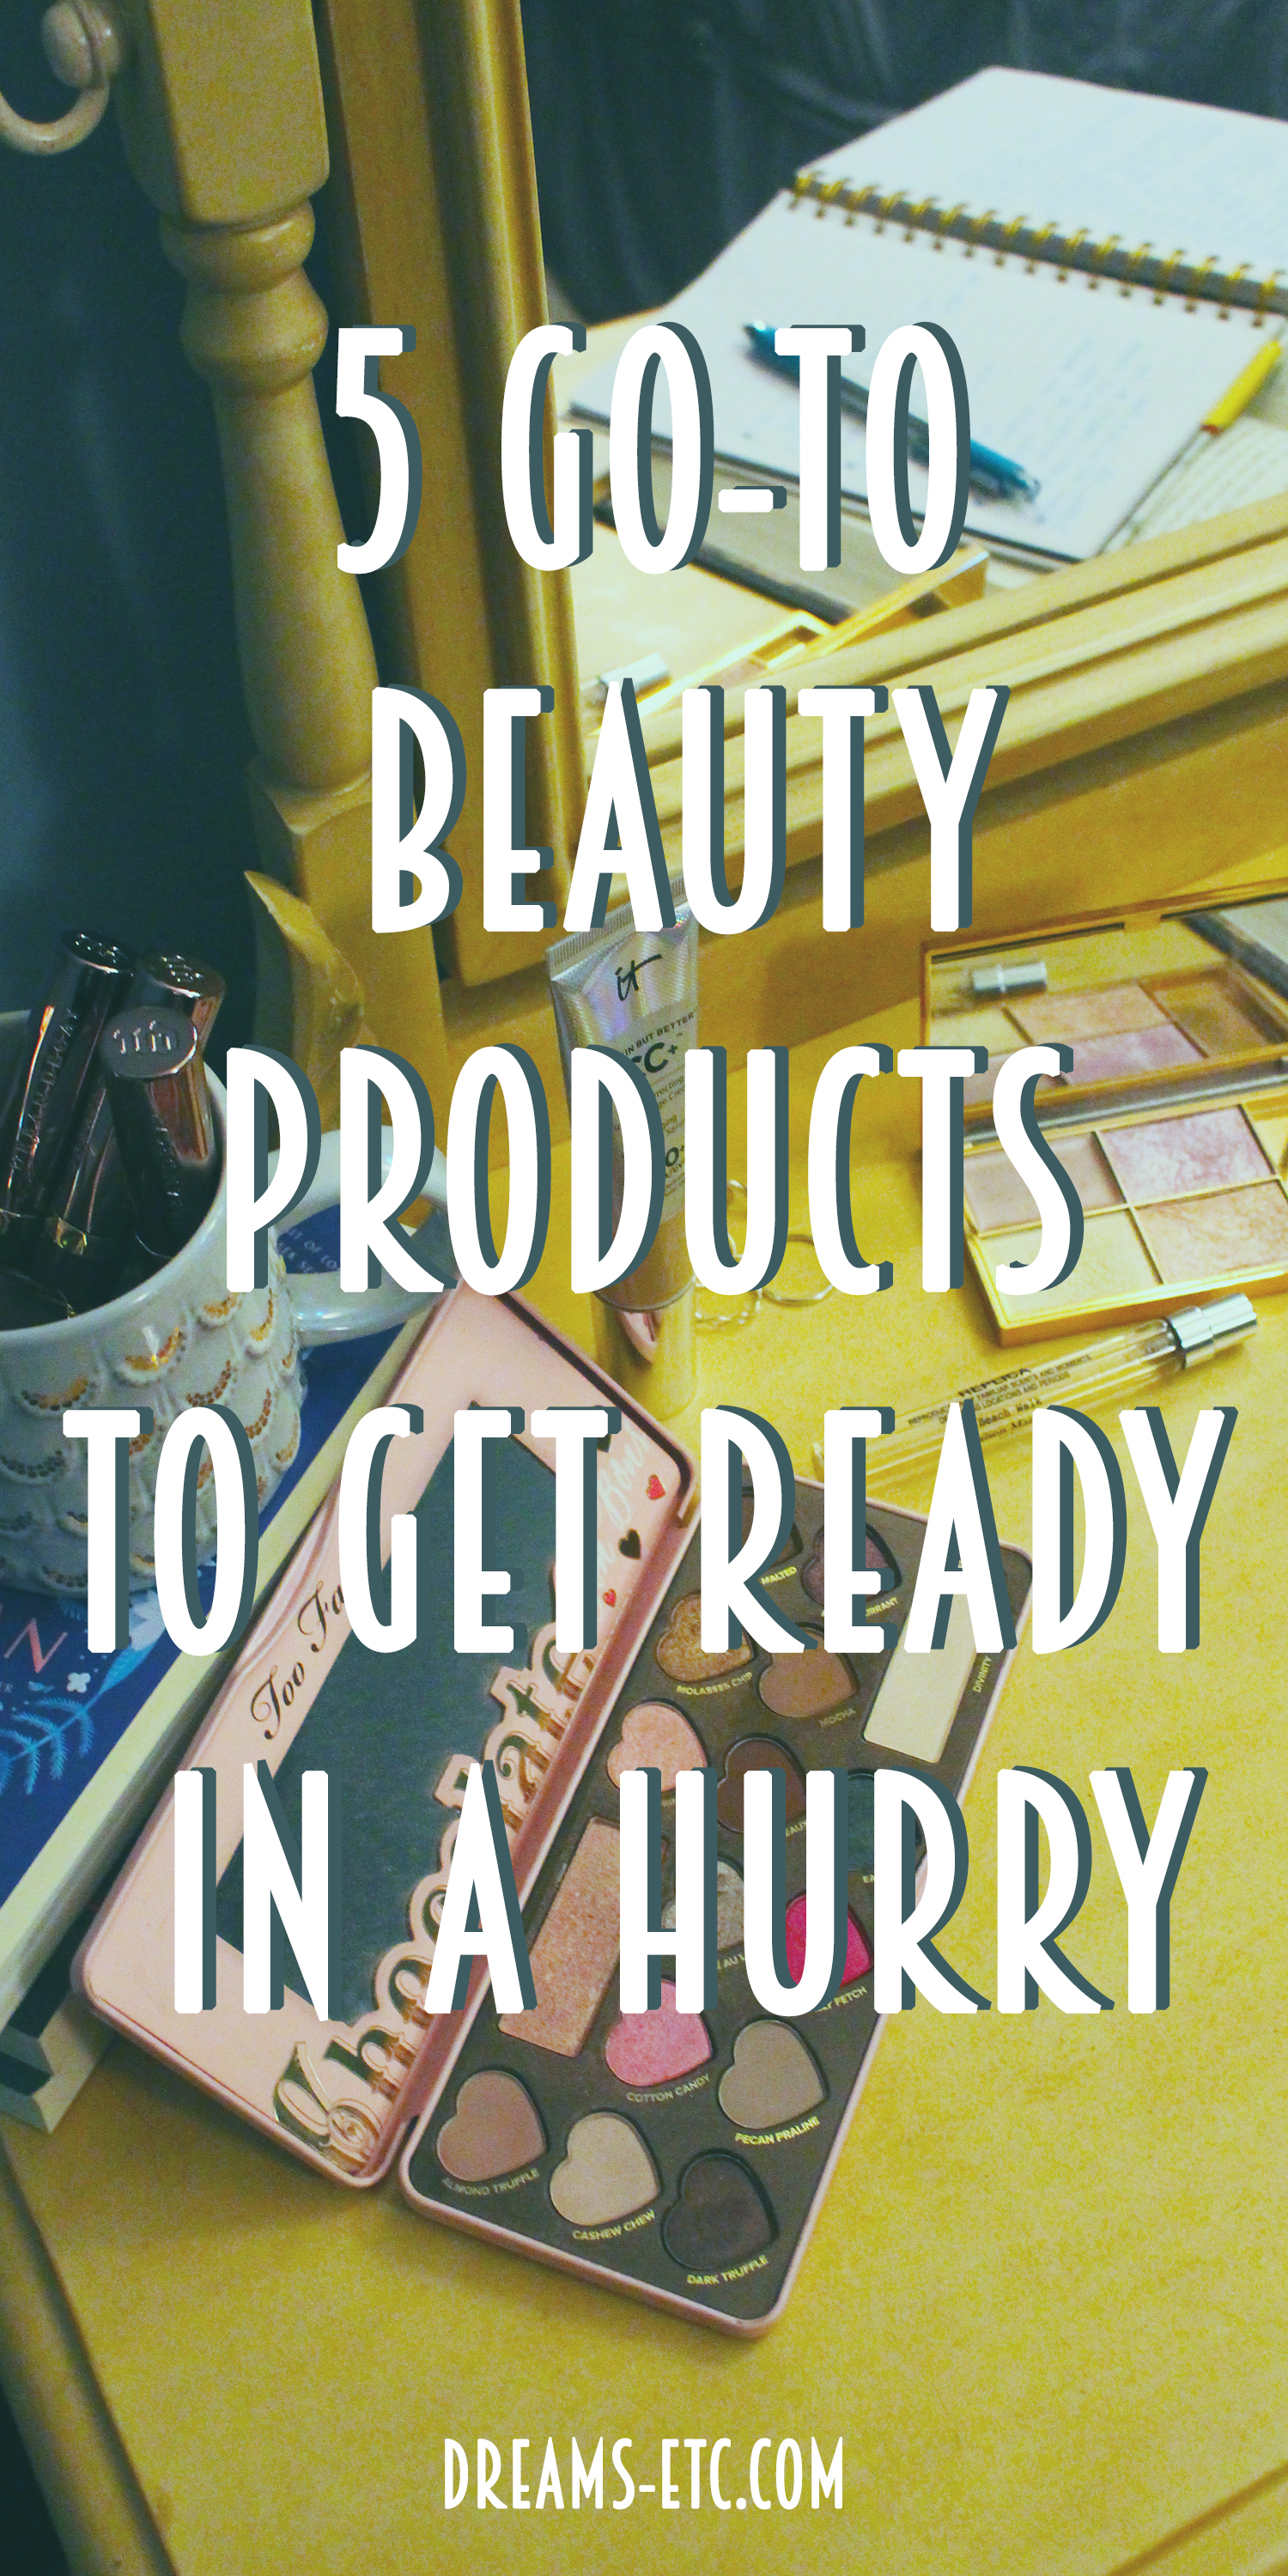 Ever have trouble getting ready int eh morning? Here are 5 go-to beauty products that are so easy to use you can put them on in a hurry.... and get a few extra minutes of sleep in! // dreams-etc.com